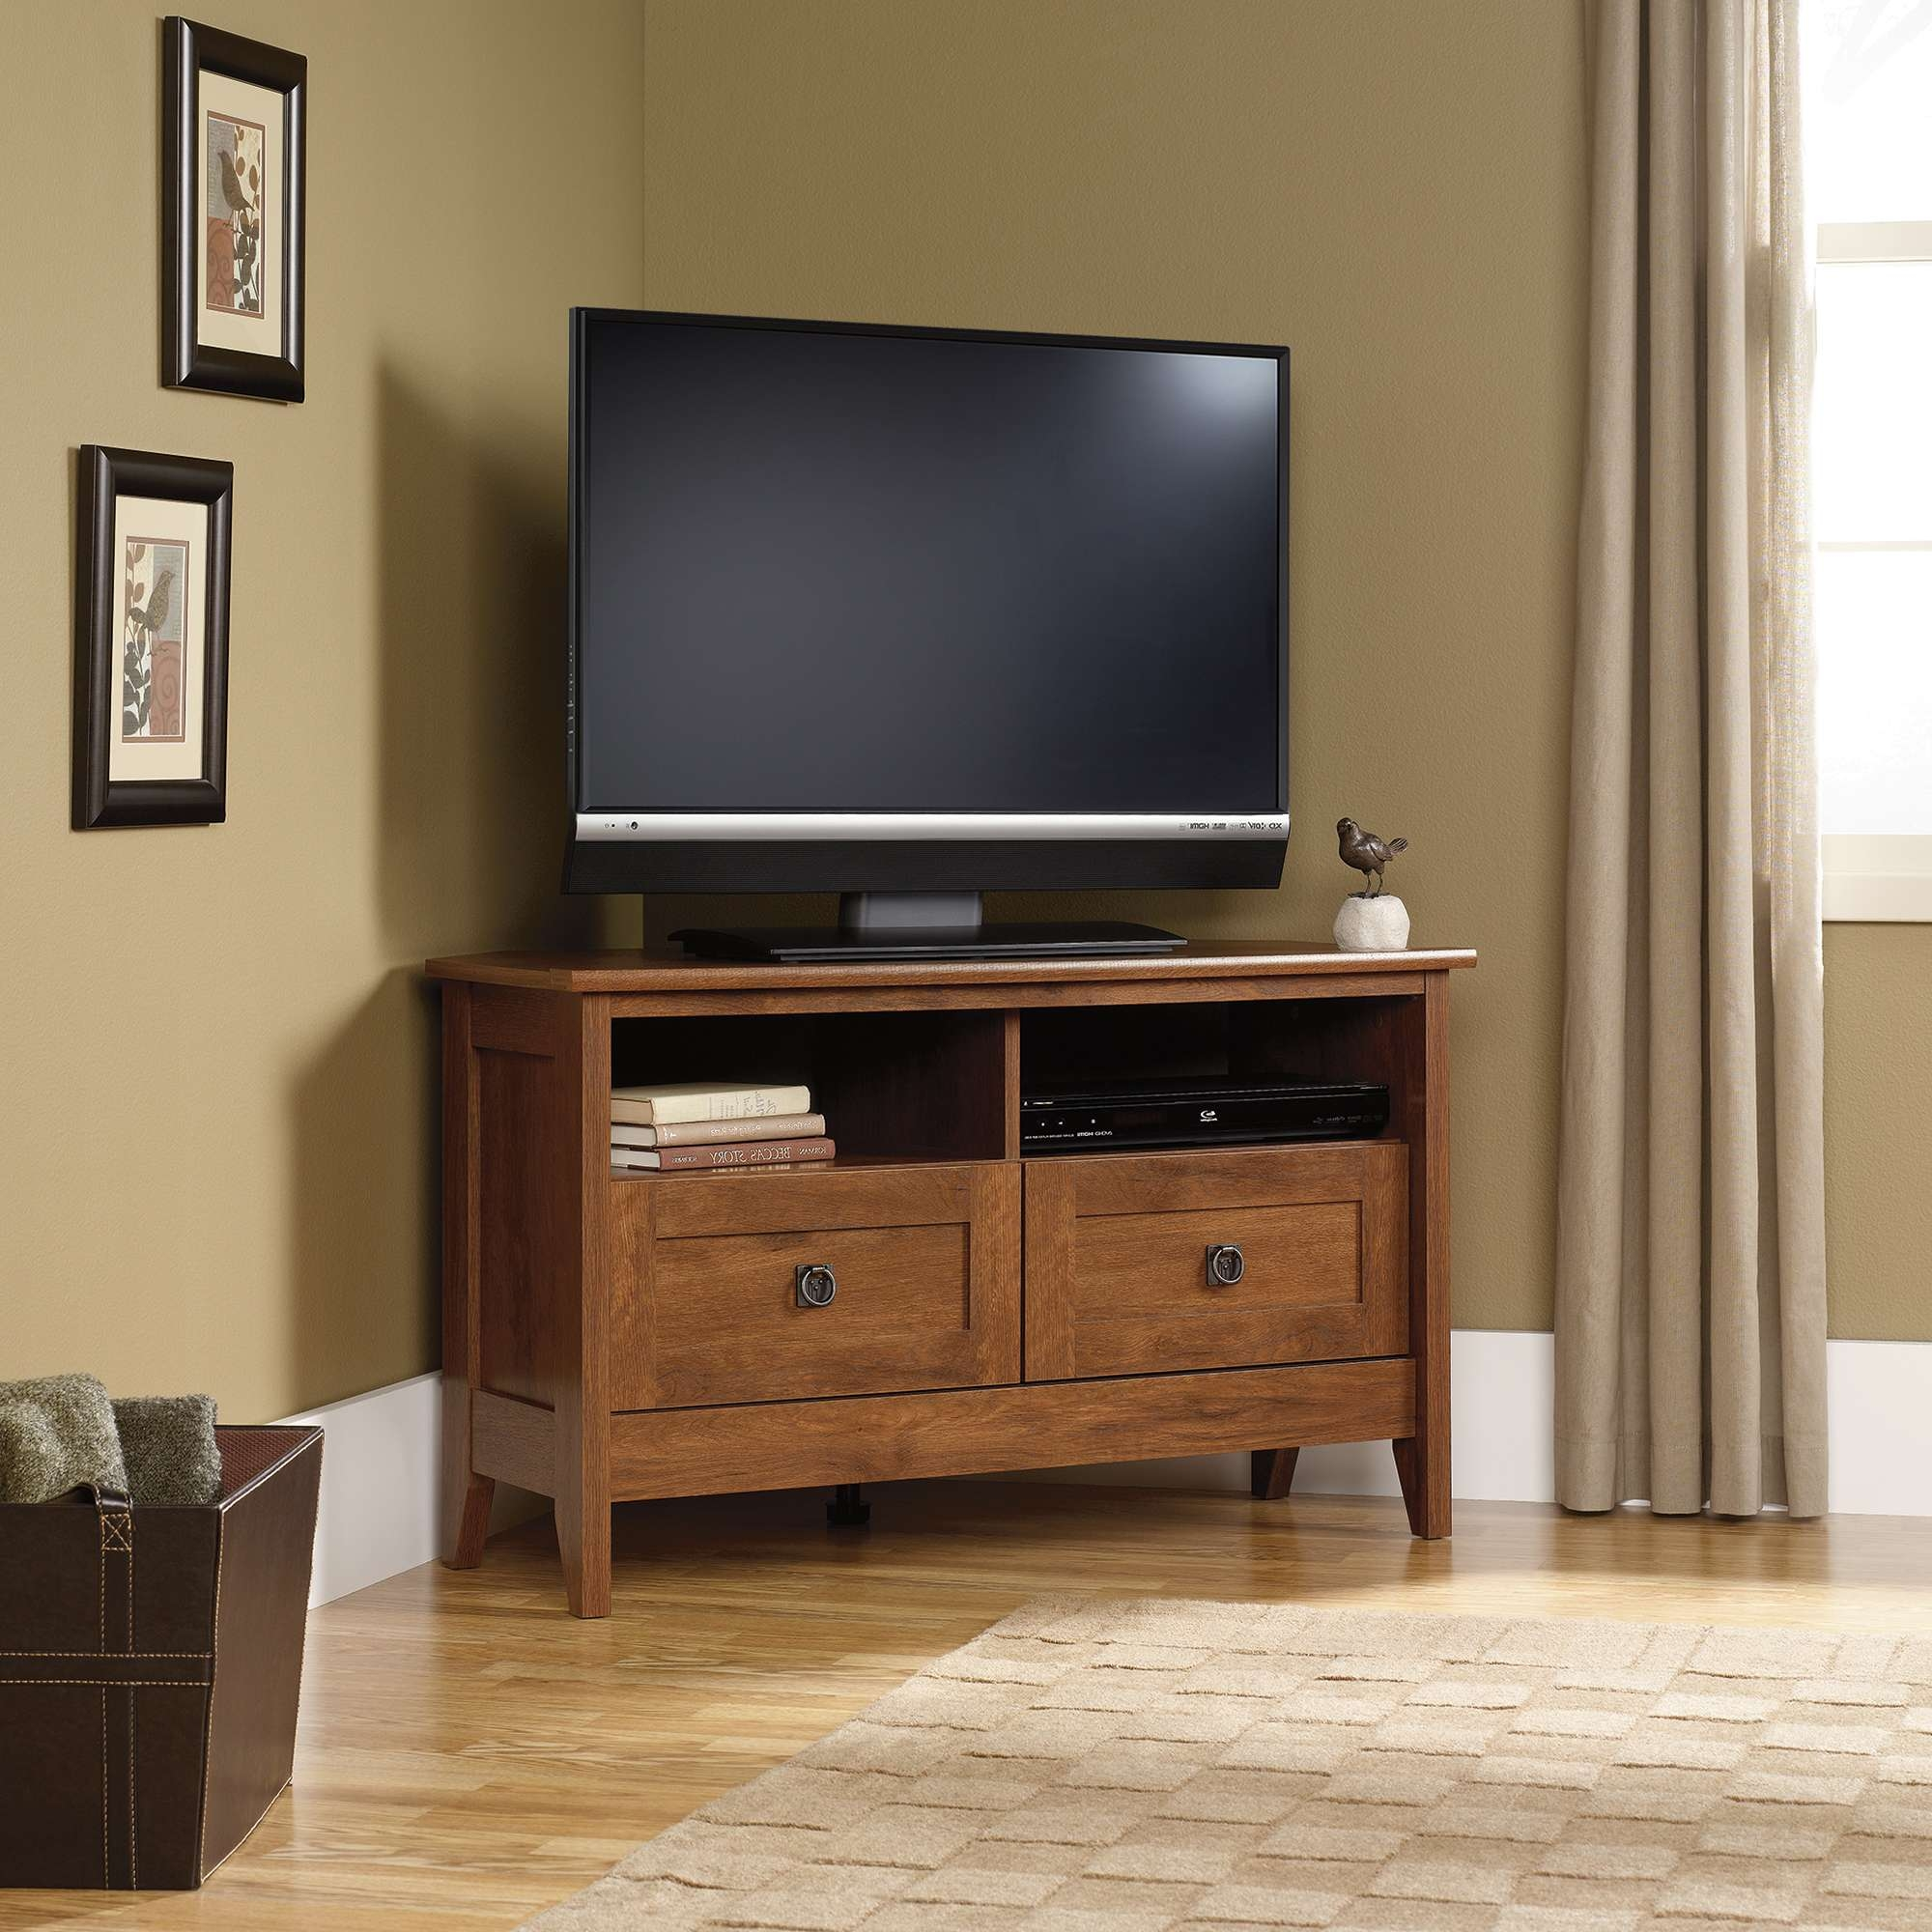 Sauder Select | Corner Tv Stand | 410627 | Sauder With Regard To Tv Cabinets (View 19 of 20)